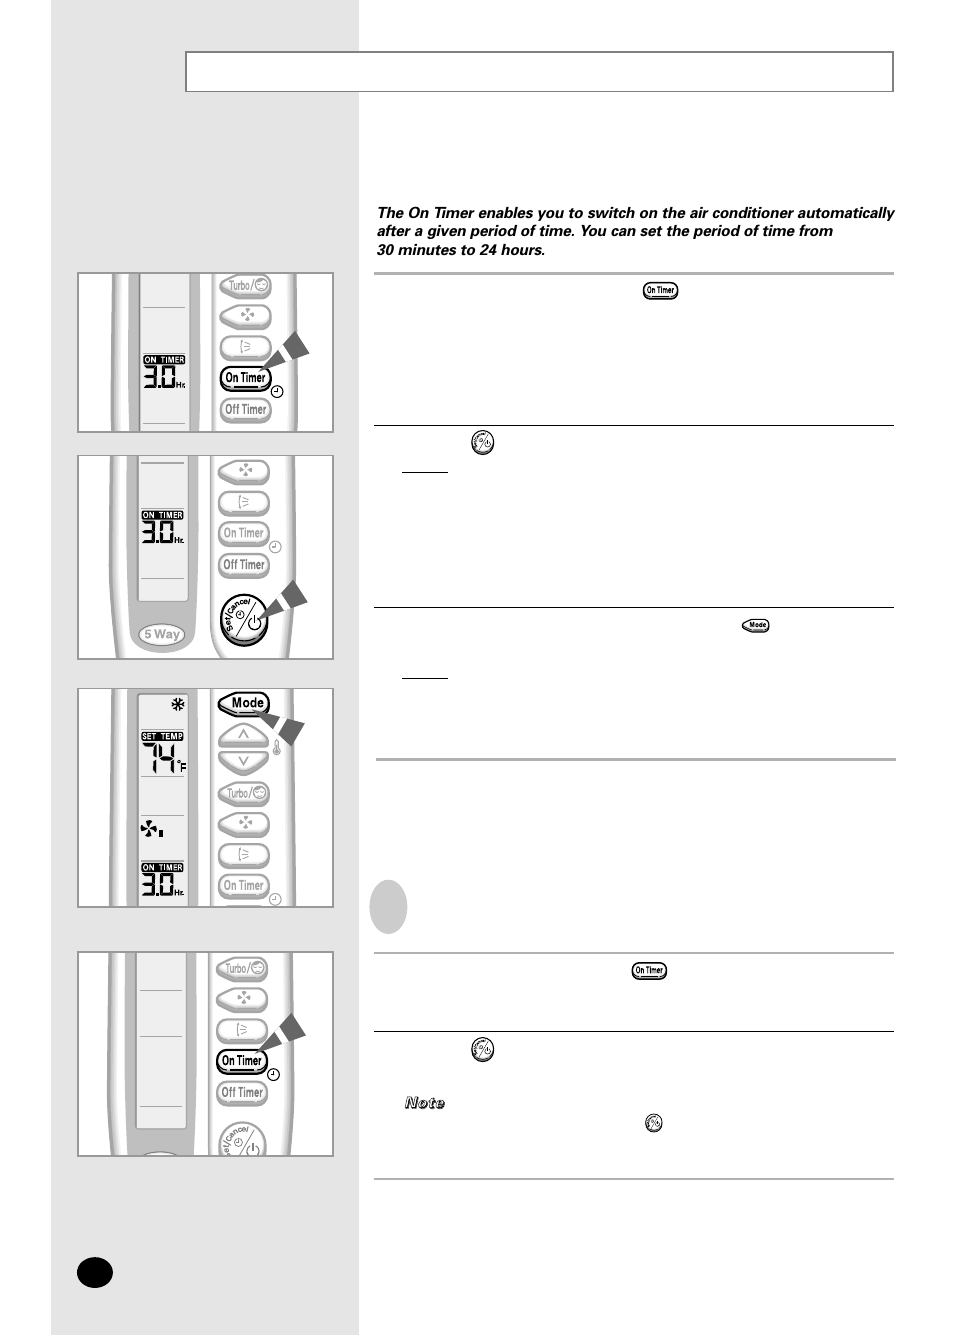 Setting the on timer | Samsung AS07A5(6)MA User Manual | Page 16 / 26